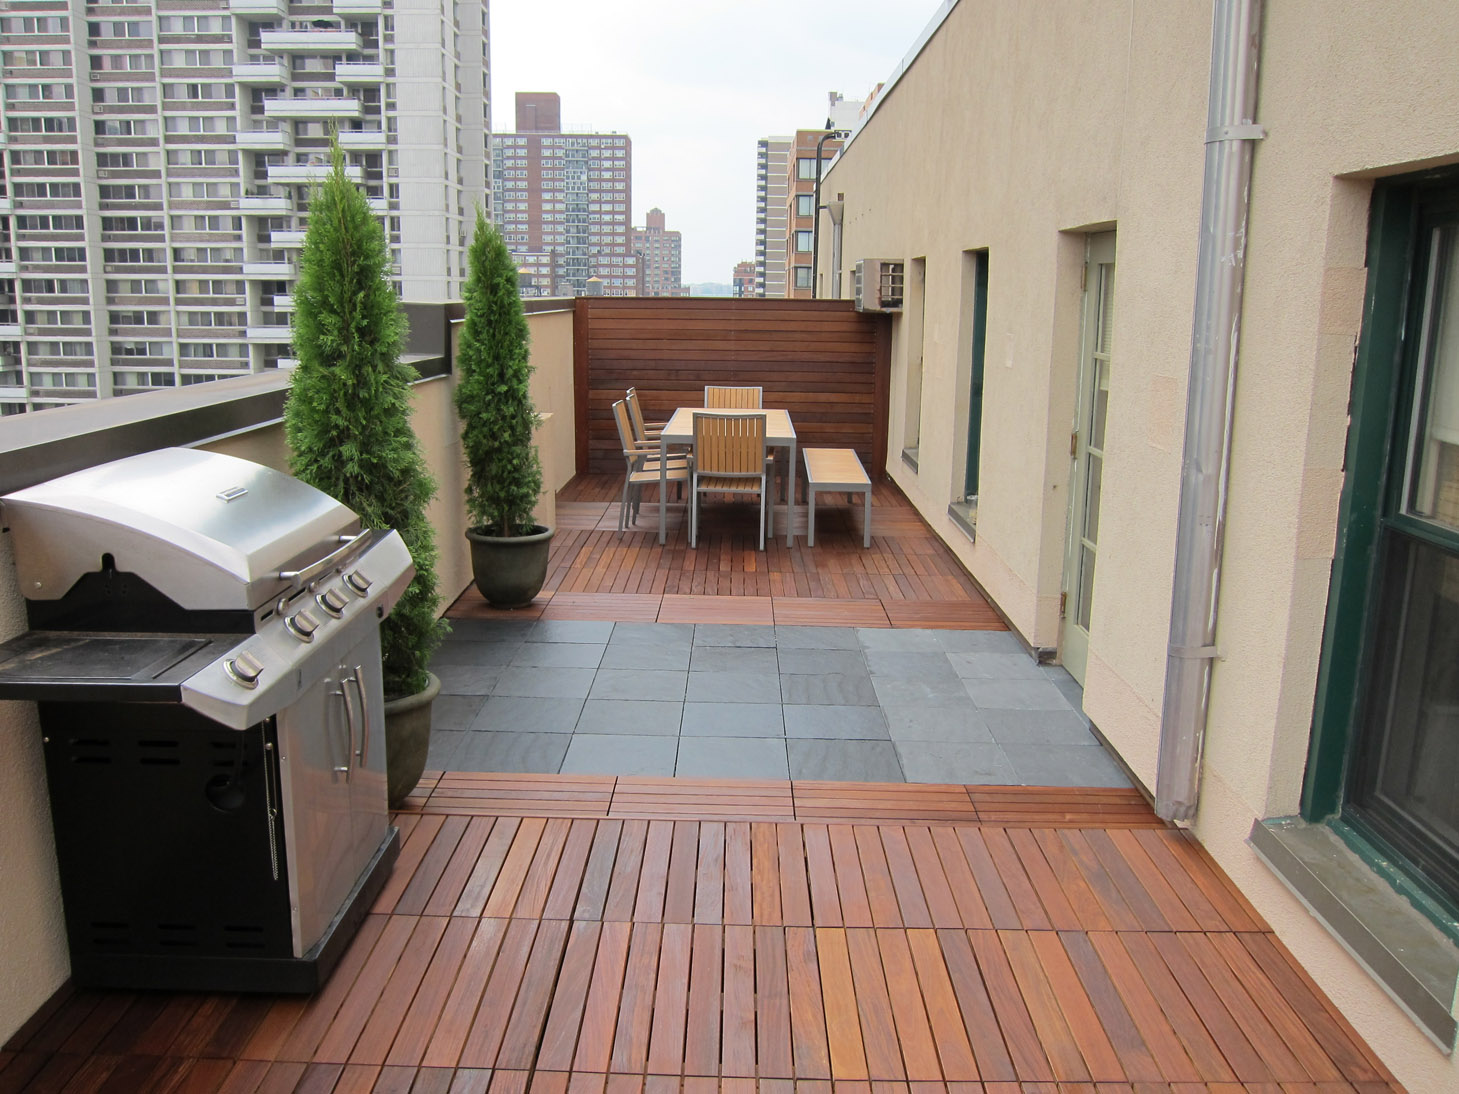 Rooftop terrace decks all decked out hybrid decks wood porcelain and or bluestone pavers dailygadgetfo Choice Image